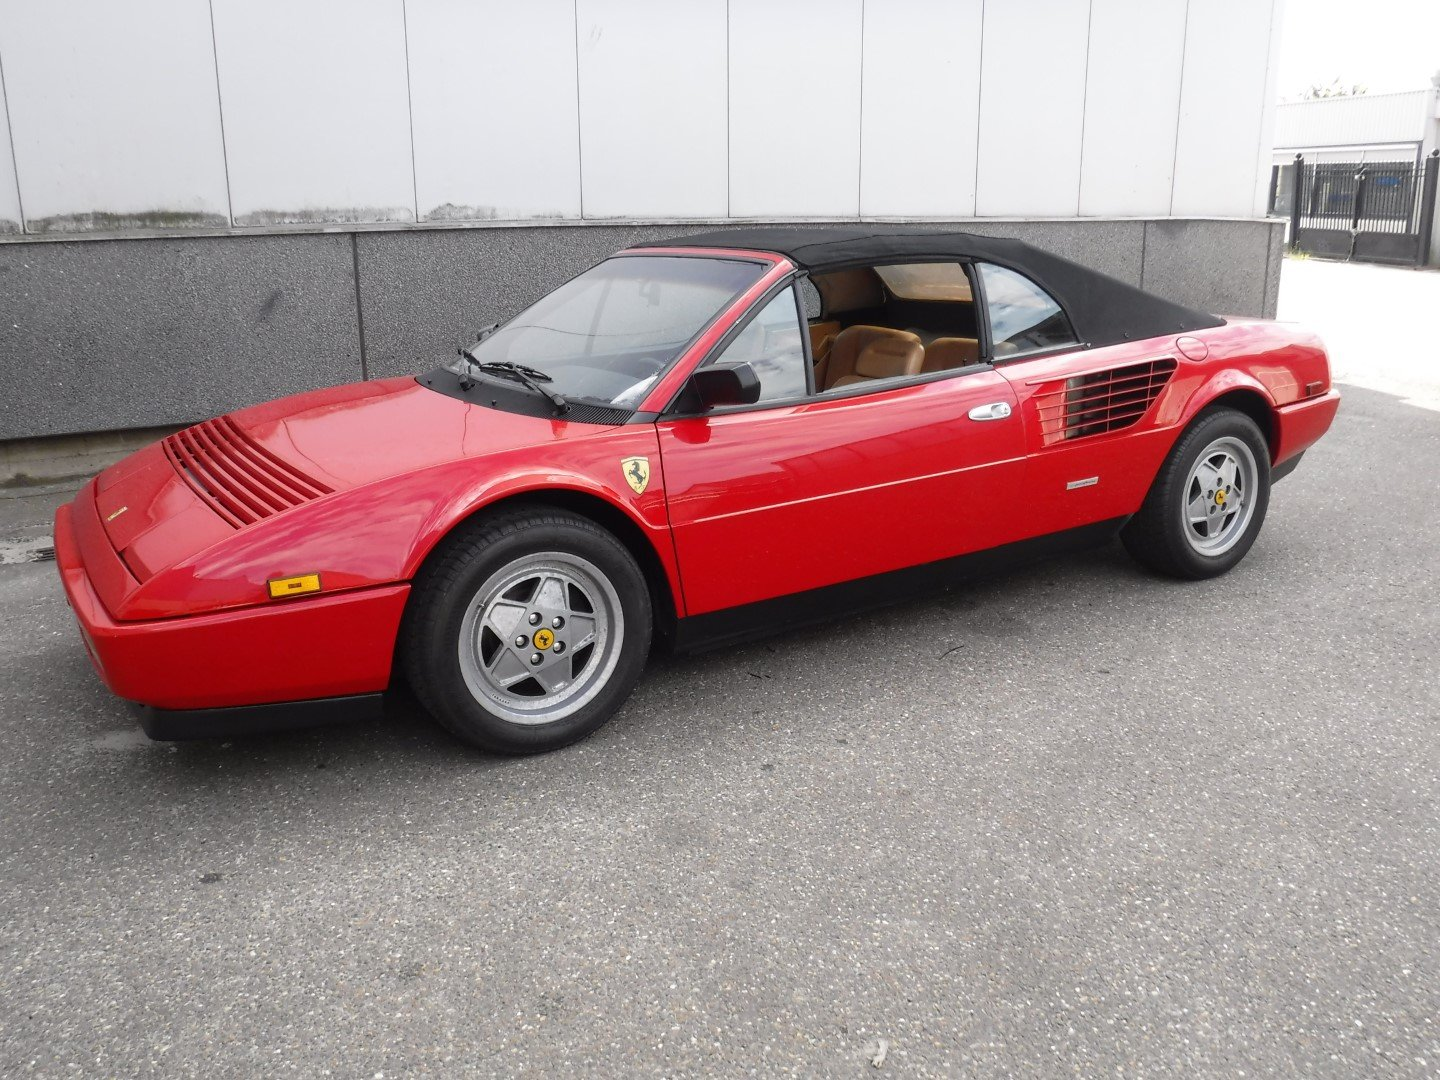 Ferrari Mondial cabrio 1988 For Sale (picture 1 of 6)